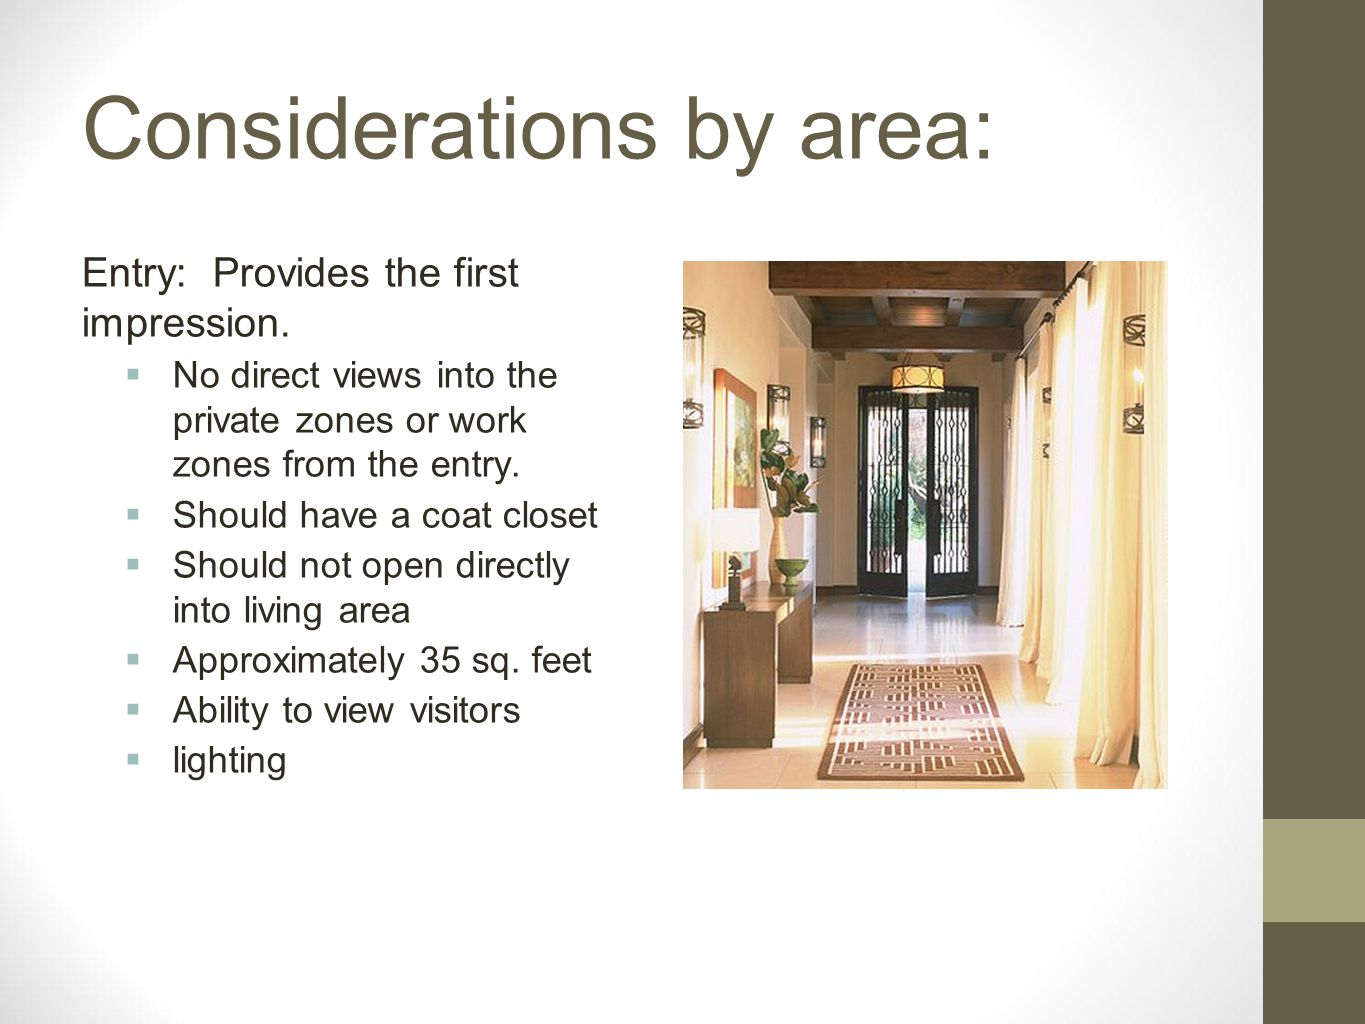 Considerations by area: Entry: Provides the first impression. No direct views into the private zones or work zones from the entry. Should have a coat